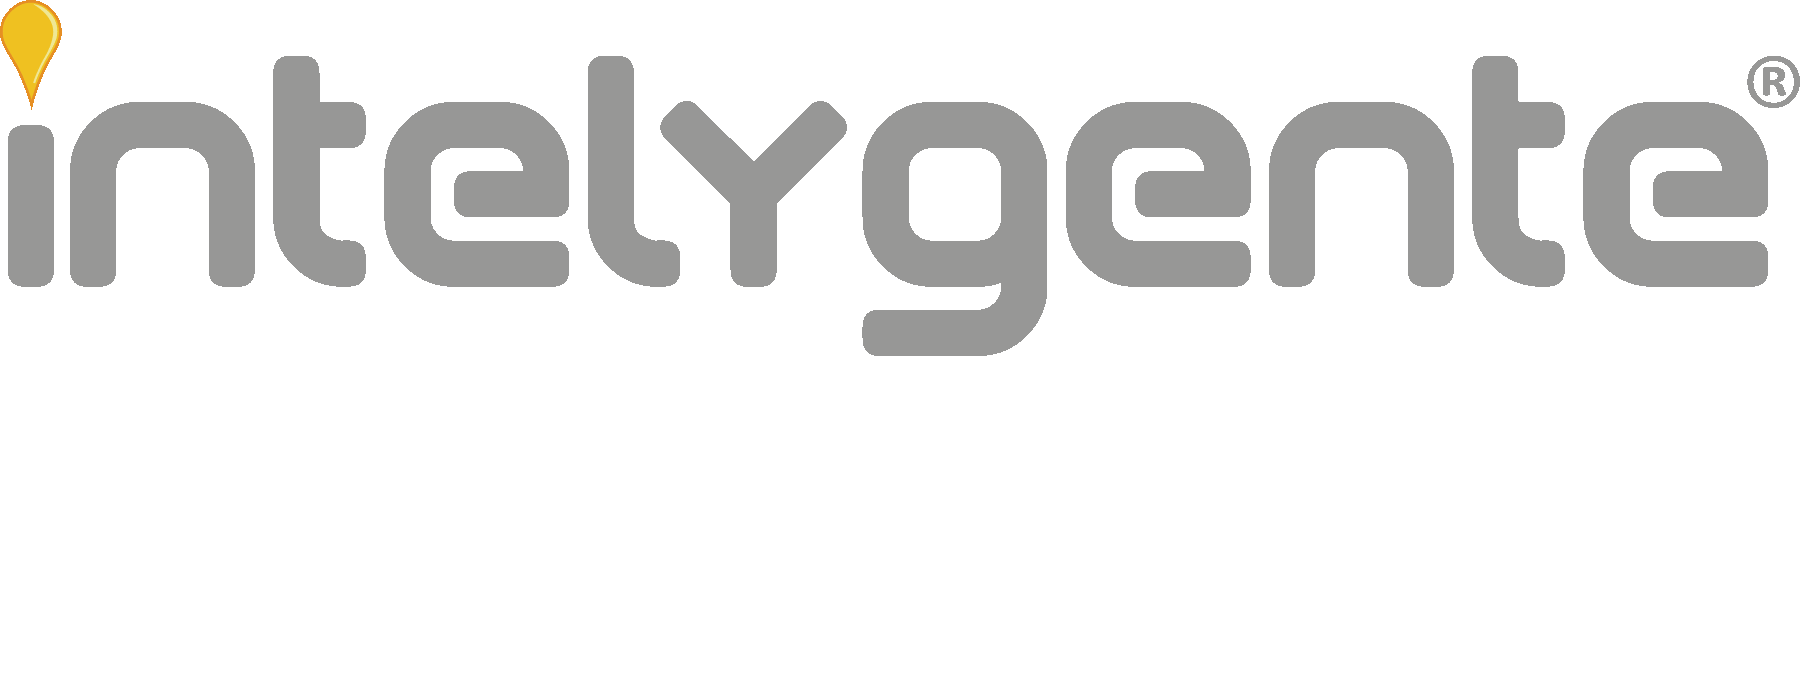 Logo for Intelygente, providing Video Production Services in Colombia